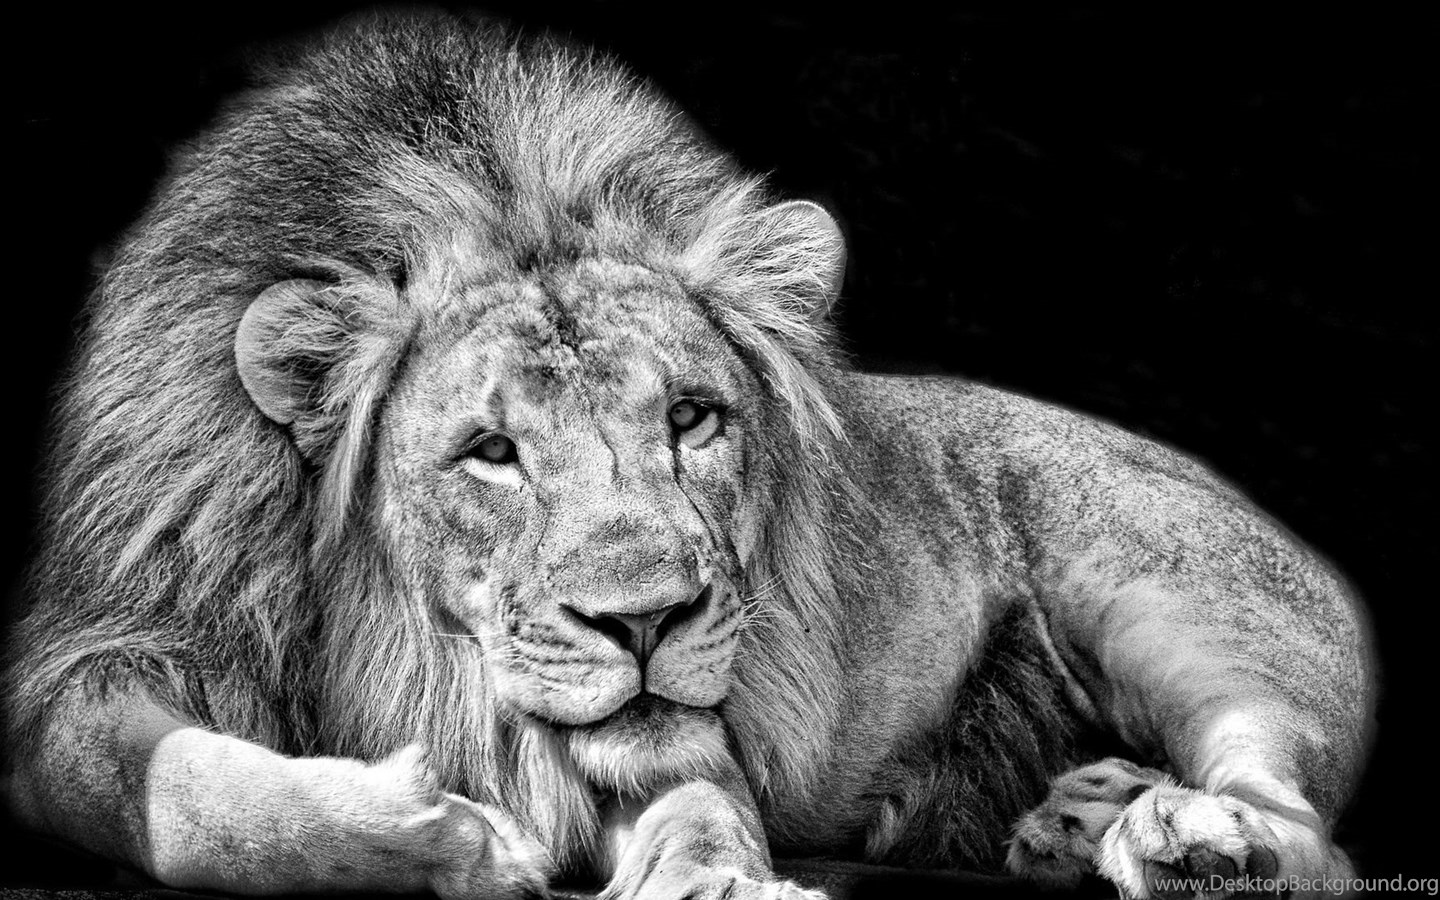 page 4: full hd 1080p lion wallpapers hd, desktop backgrounds